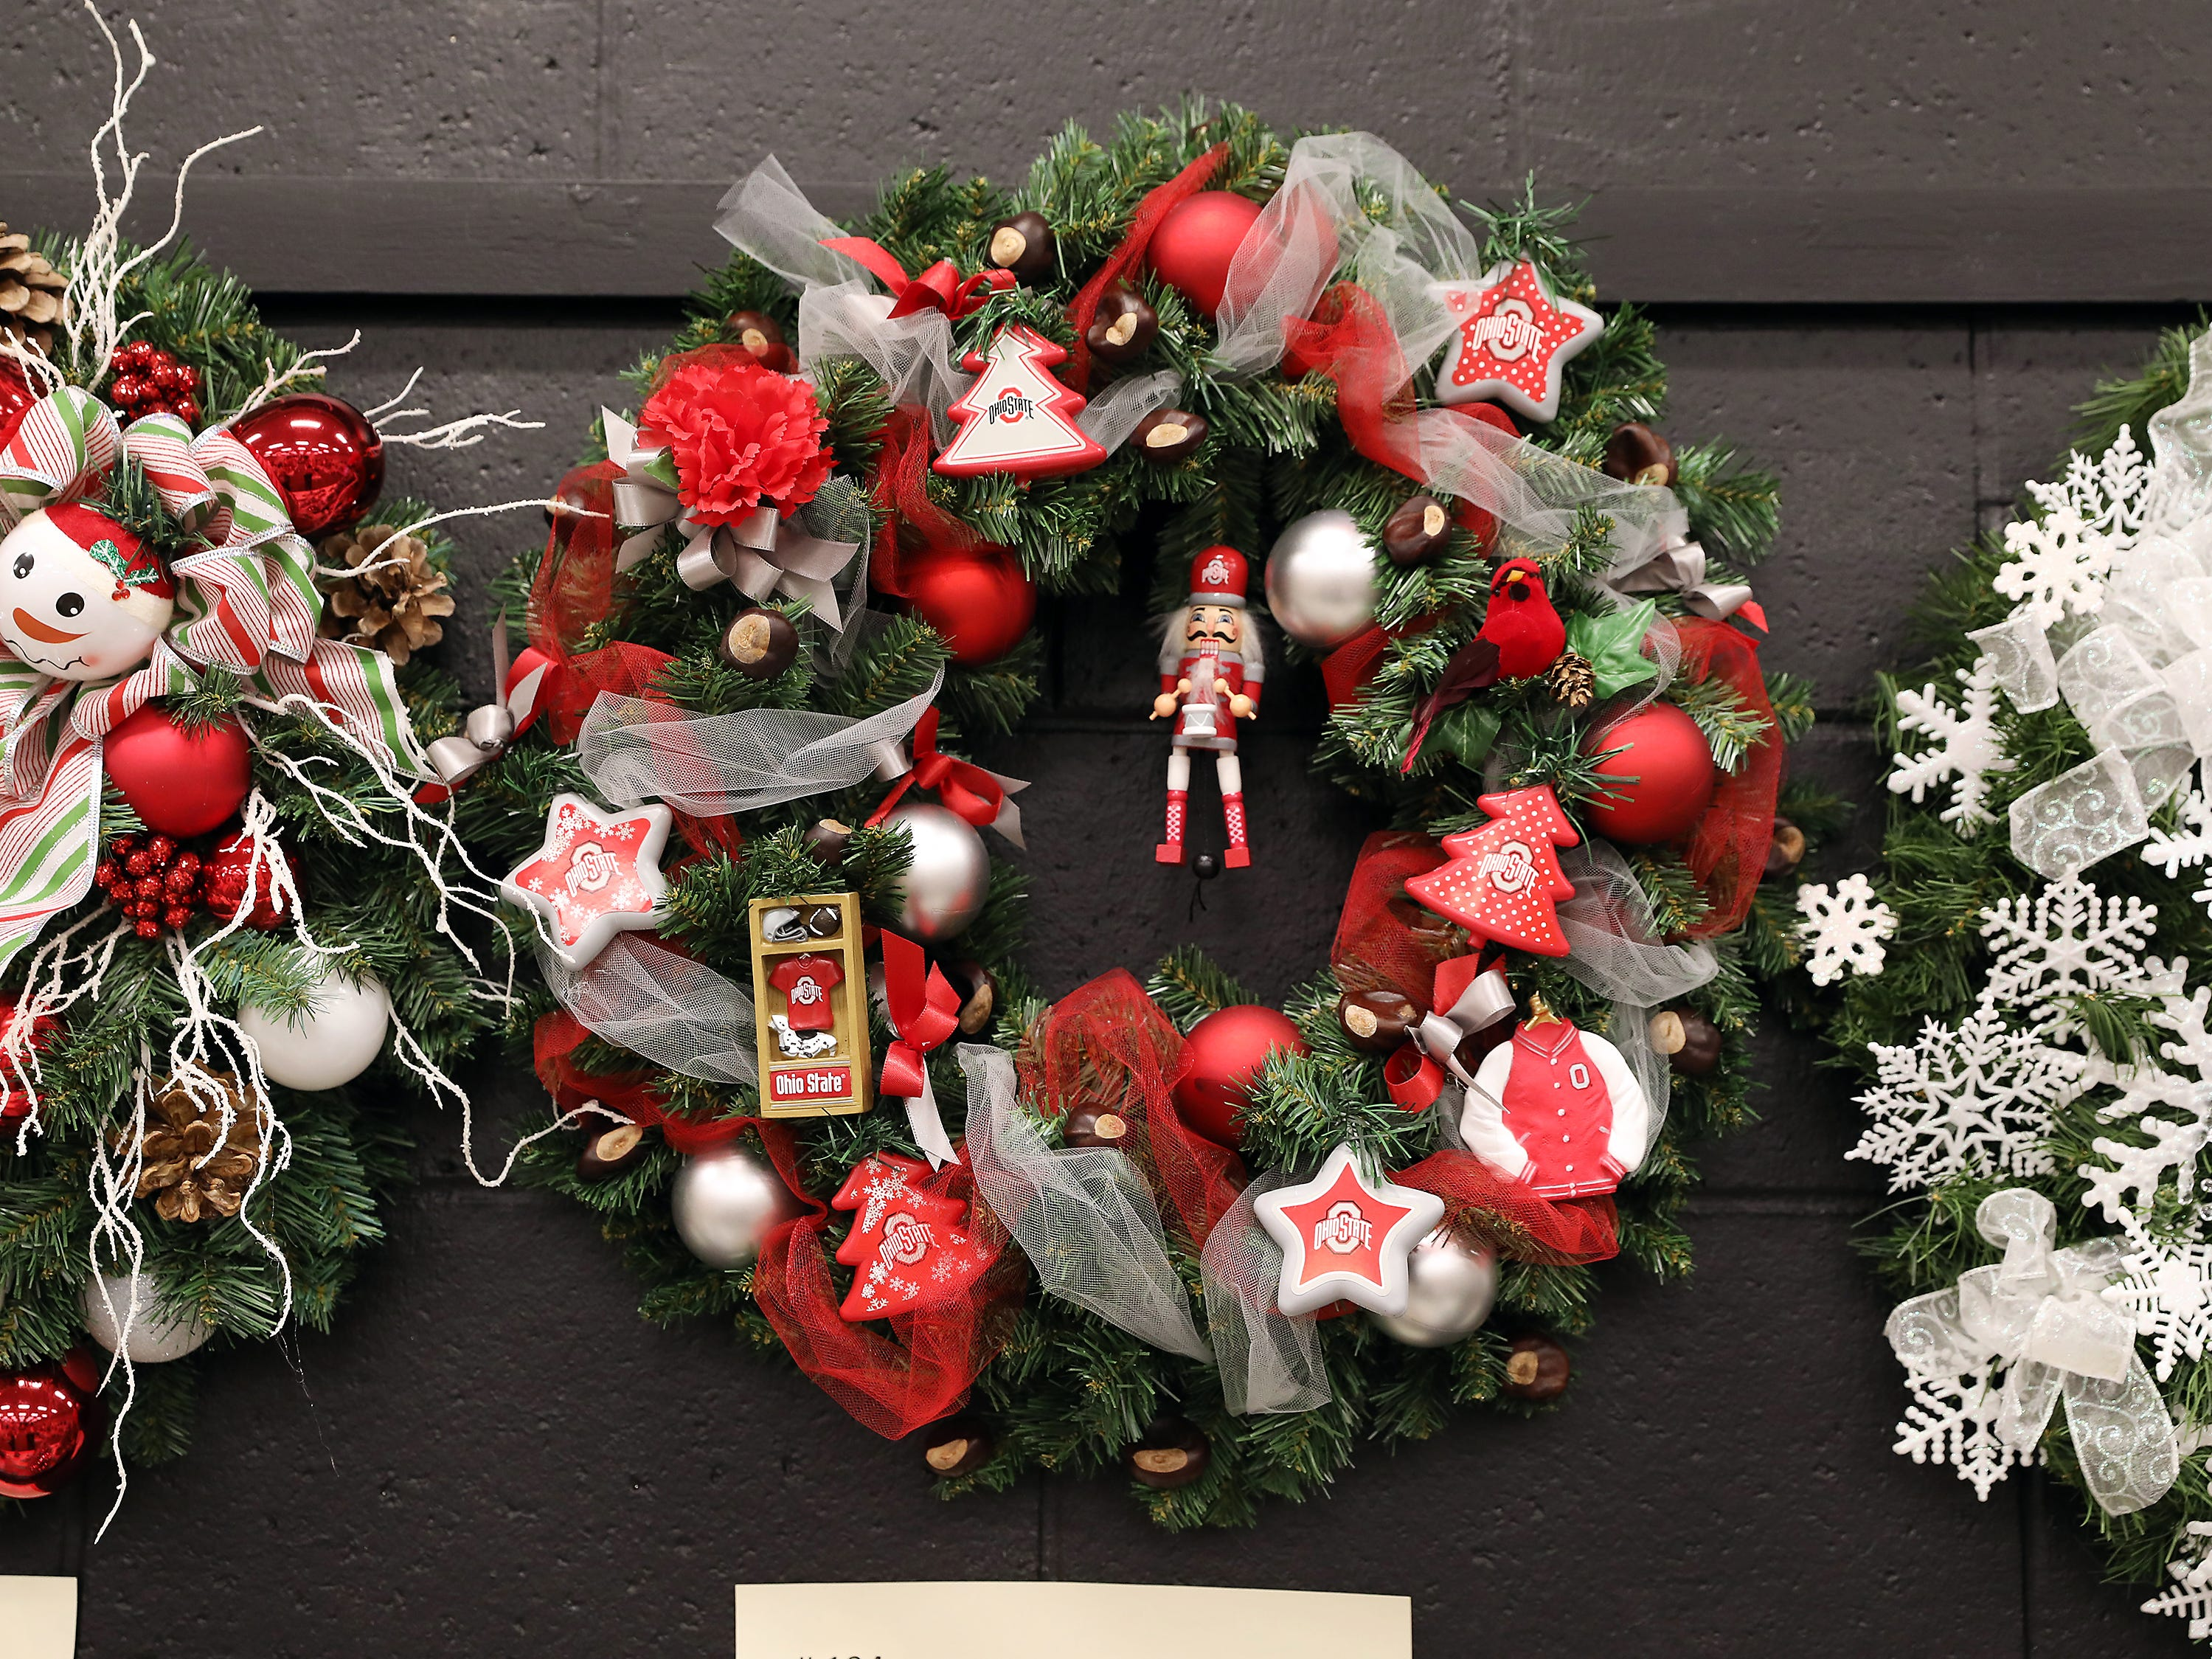 "194	4:45 PM	Bryan Graham - Dutro Ford	Wreath	Go Bucks!	24"" green wreath decorated in full OSU, perfect for any Ohio State fan!		4 tickets to Ohio State Men's Basketball, December 18, 2019.  OSU vs. Youngstown State.  Huntington Club level seating, parking pass included."